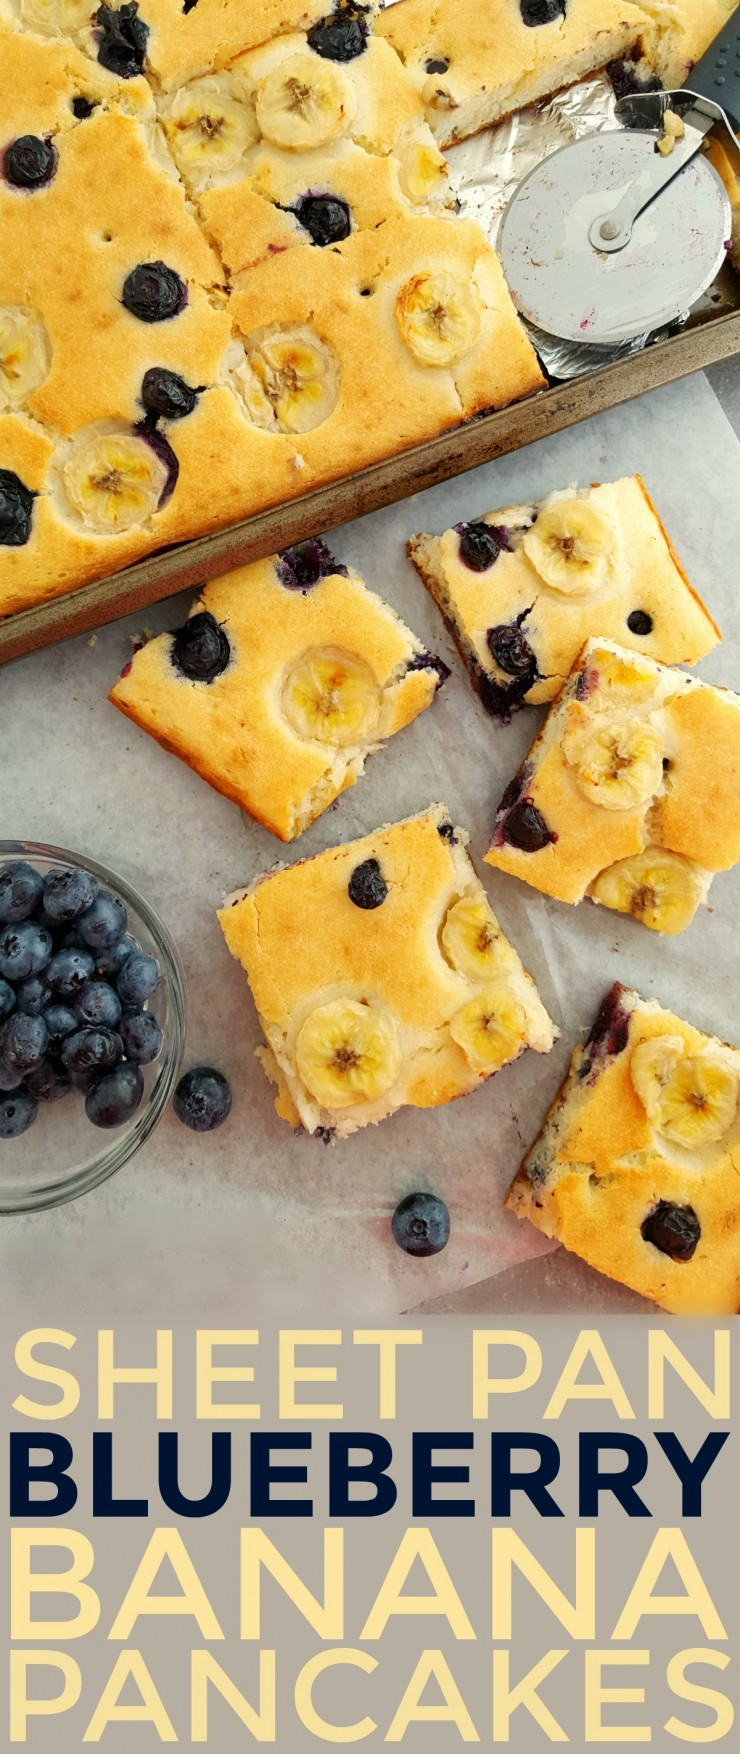 These Sheet Pan Blueberry Banana Pancakes are a great way to make a delicious, no-fuss breakfast for a crowd.